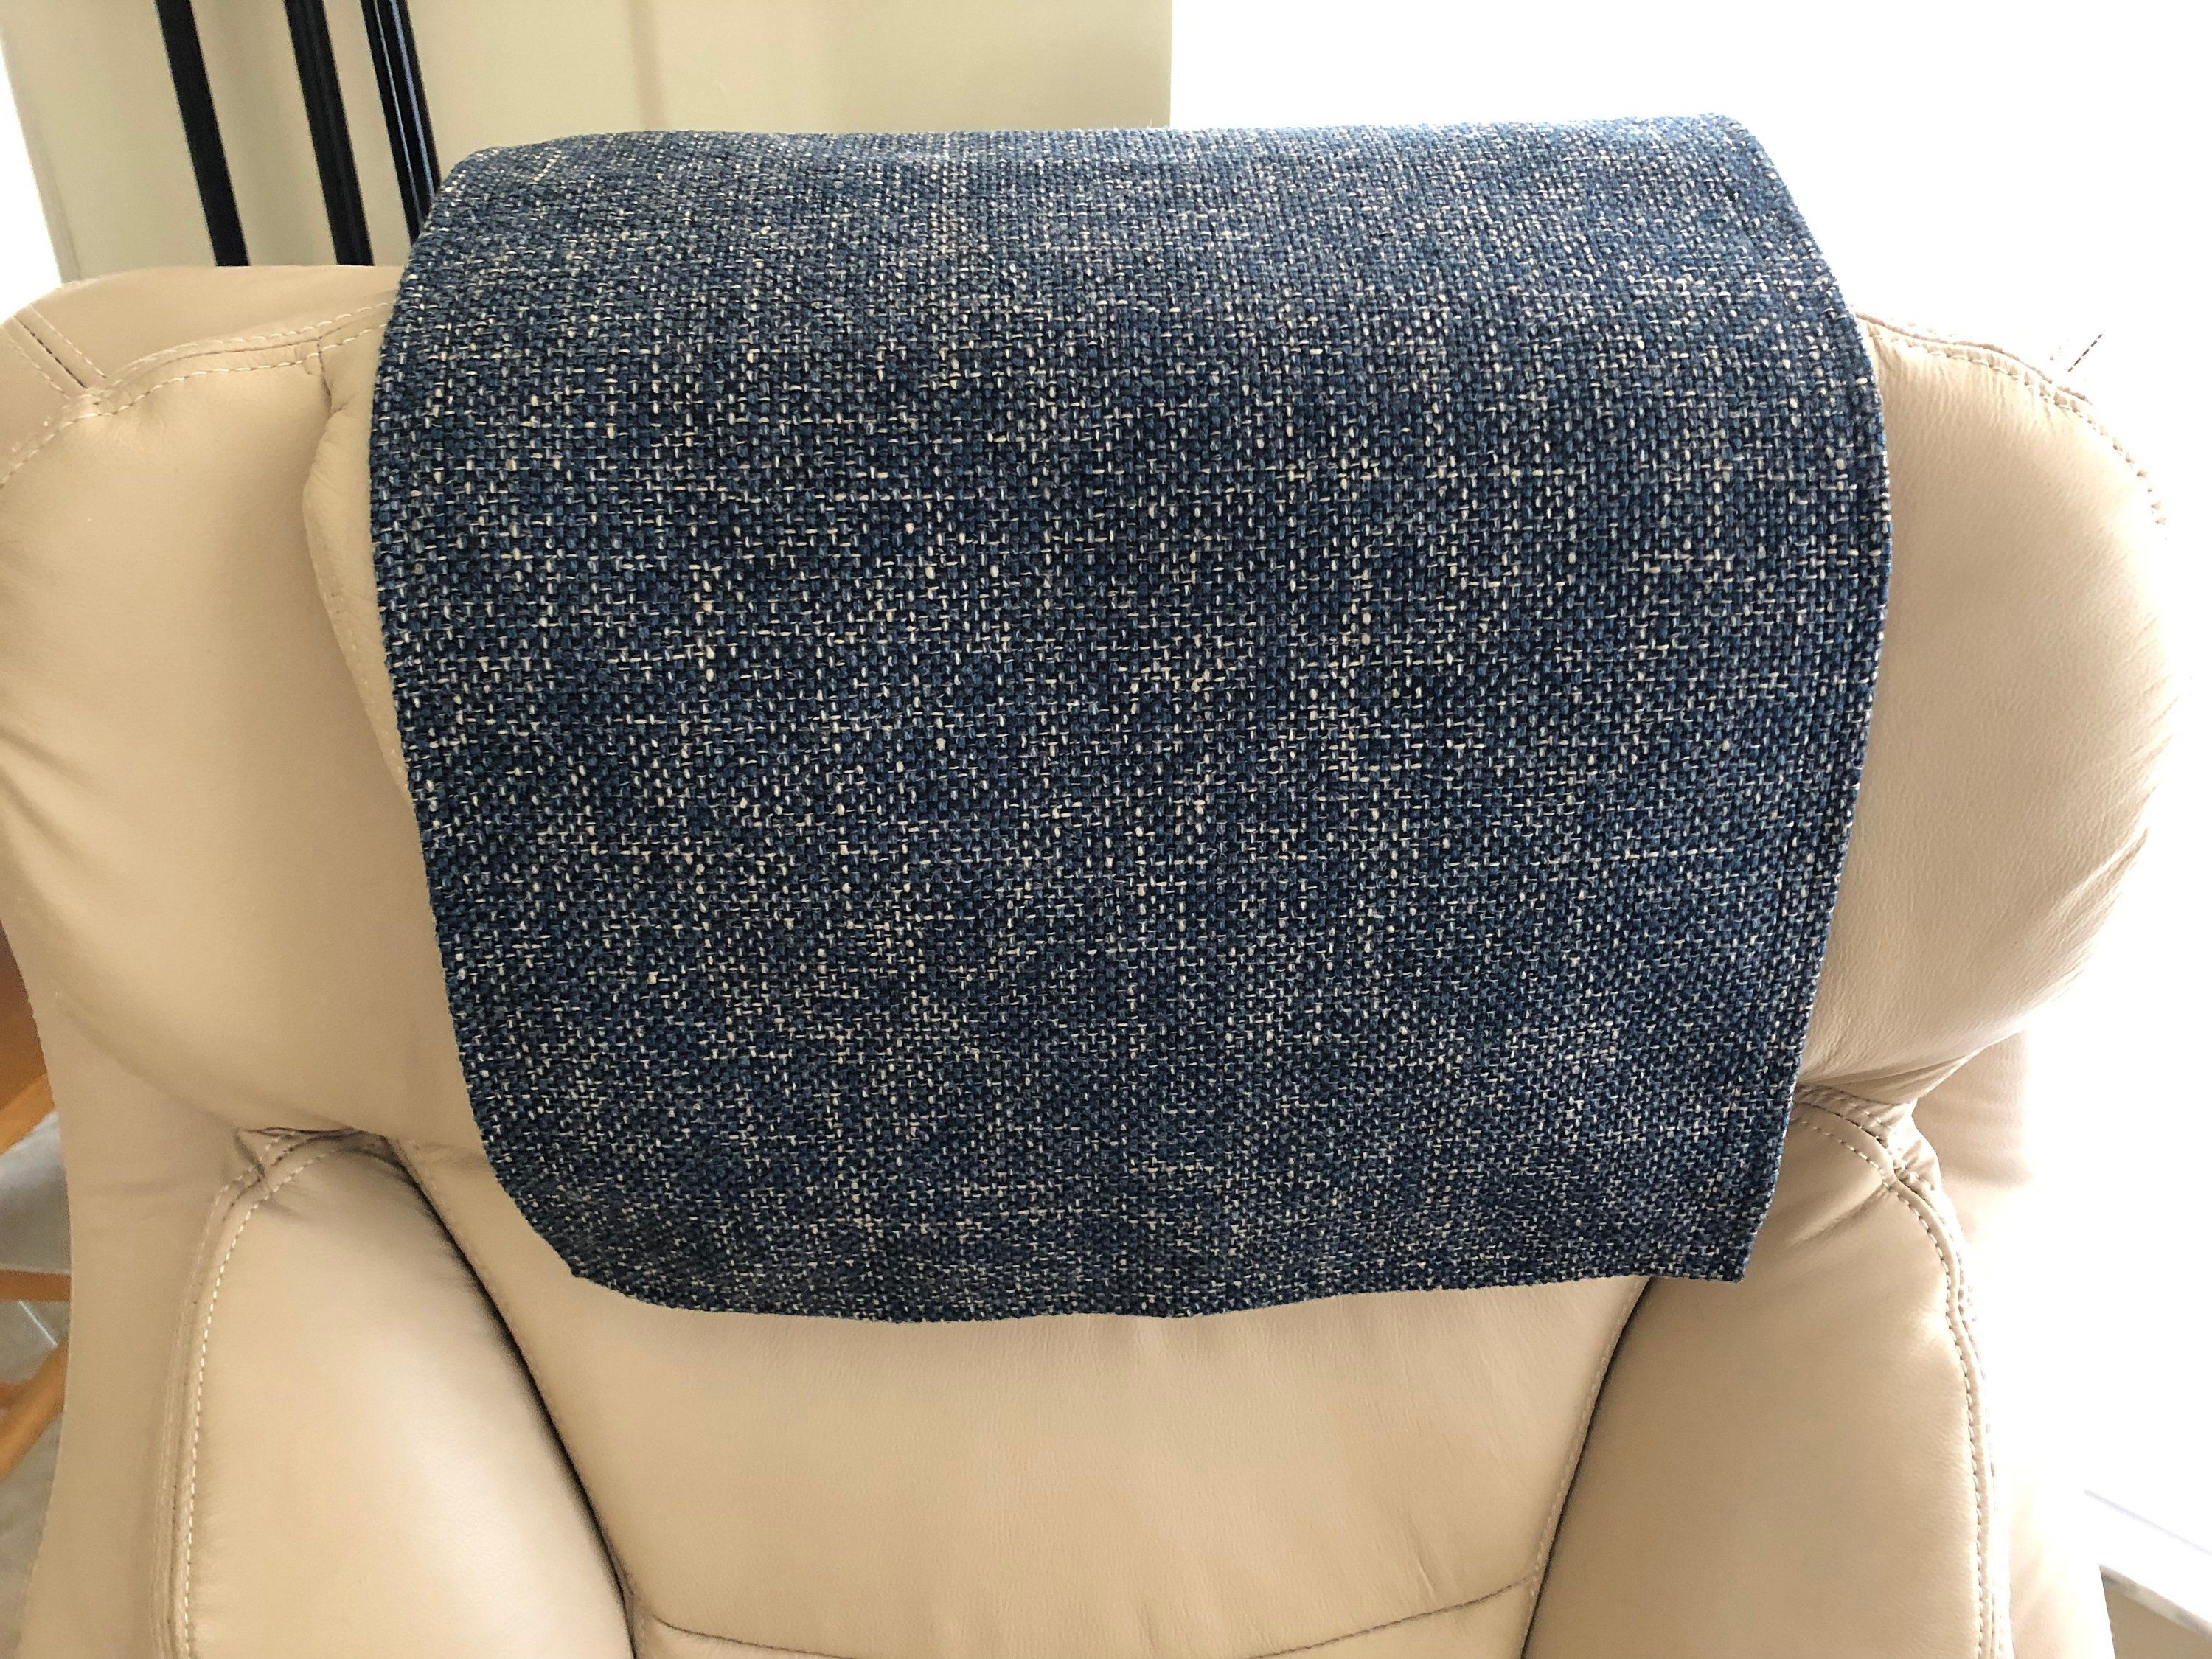 Recliner Head Cover Navy Khaki Weave Upholstery Chair Pad Furniture Protector Size 14x30 Inches Theater Seat Recliner Chair Fabric Beach Chair With Canopy